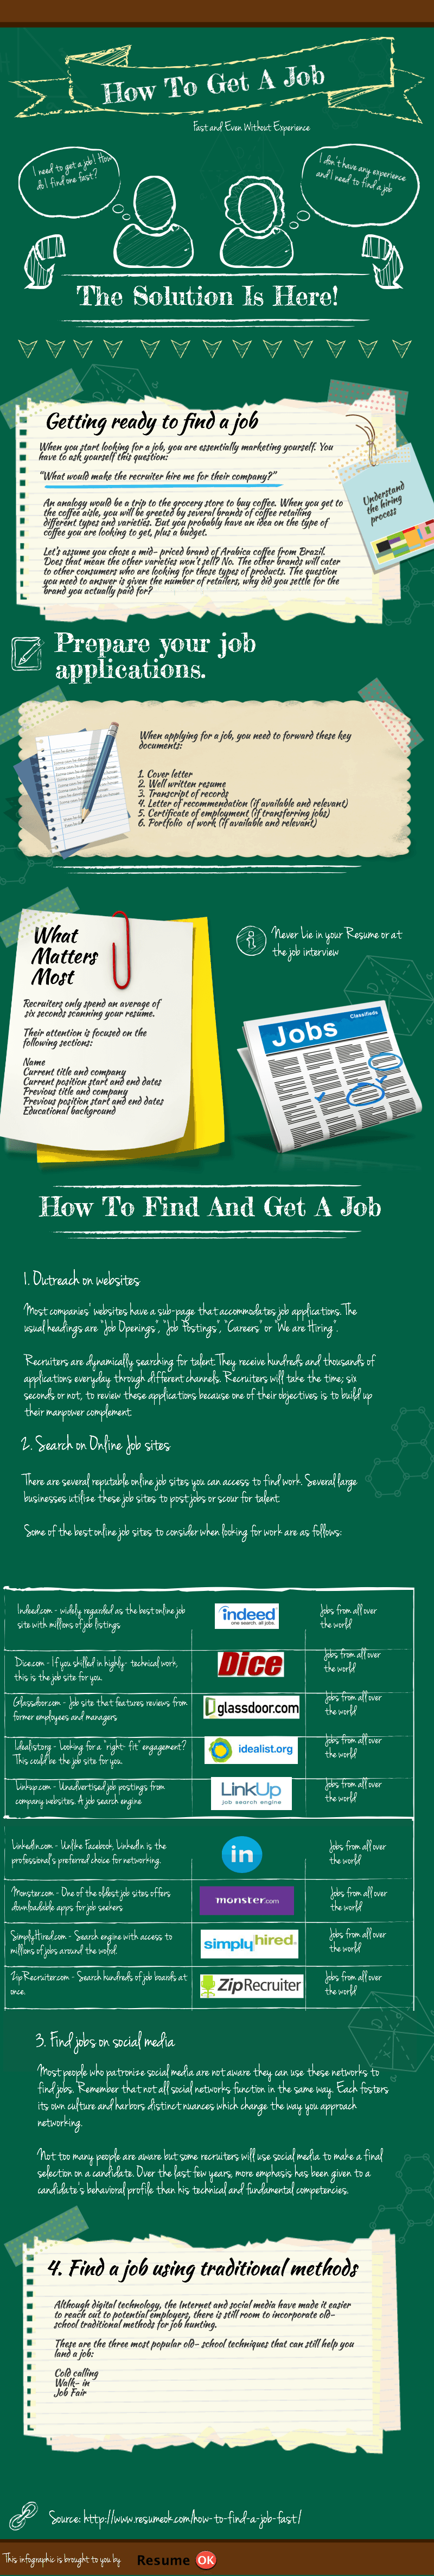 How to get a job infographic